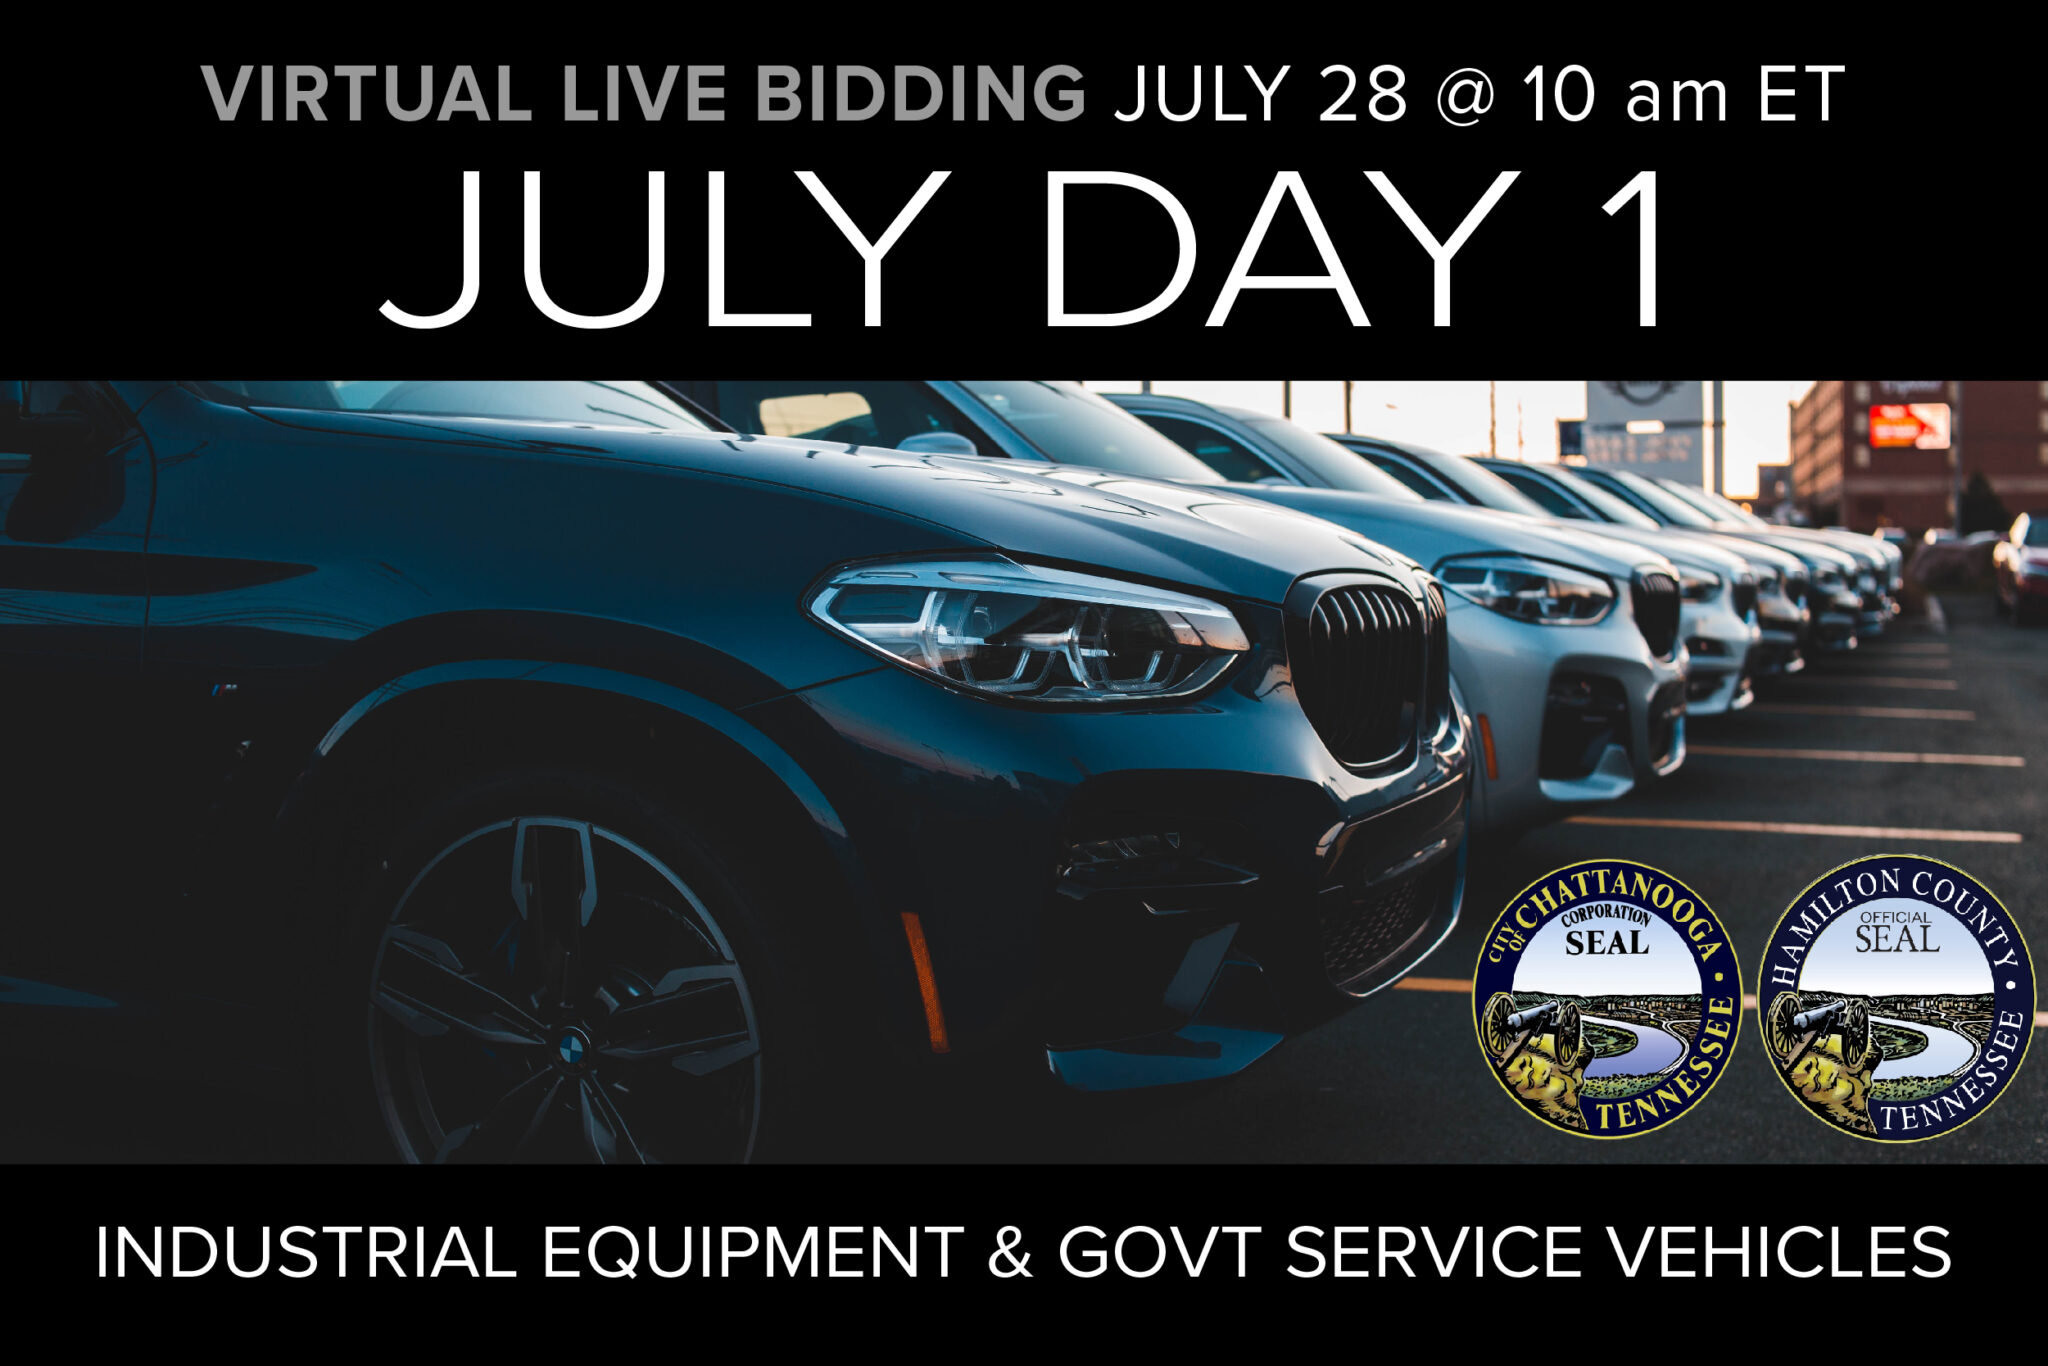 July Day 1 Virtual Live Auction on July 28 at 10am ET